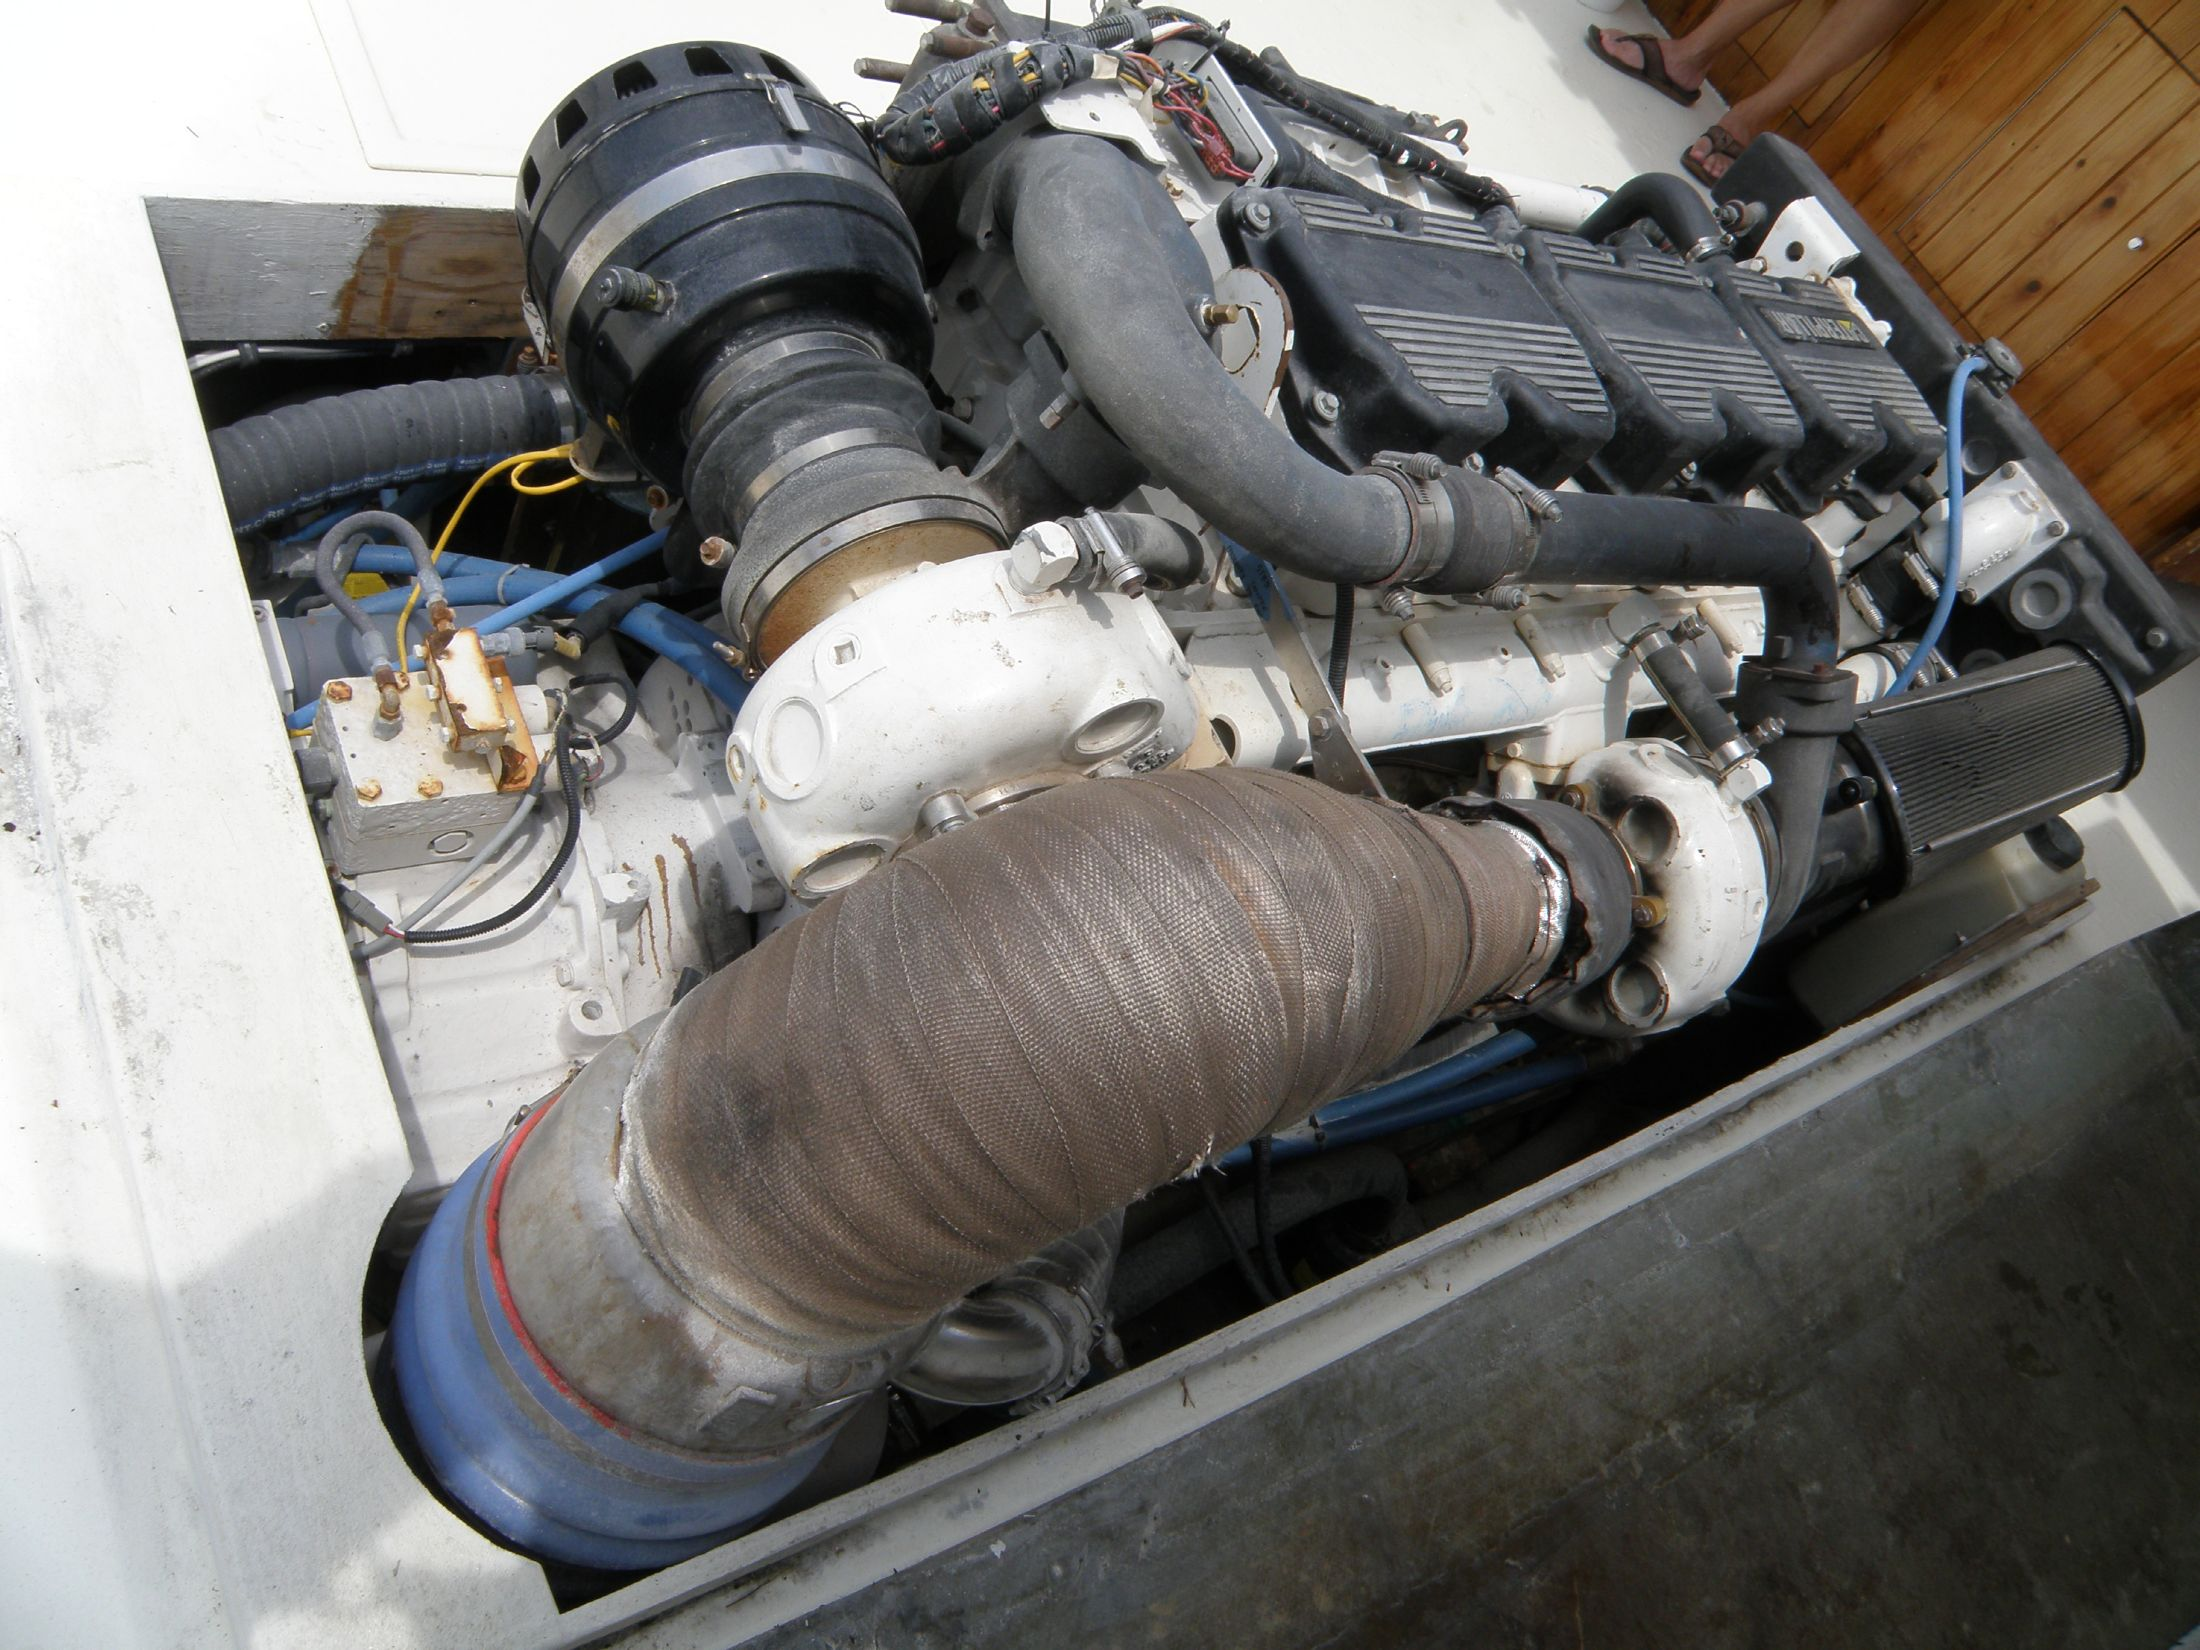 rear of engine